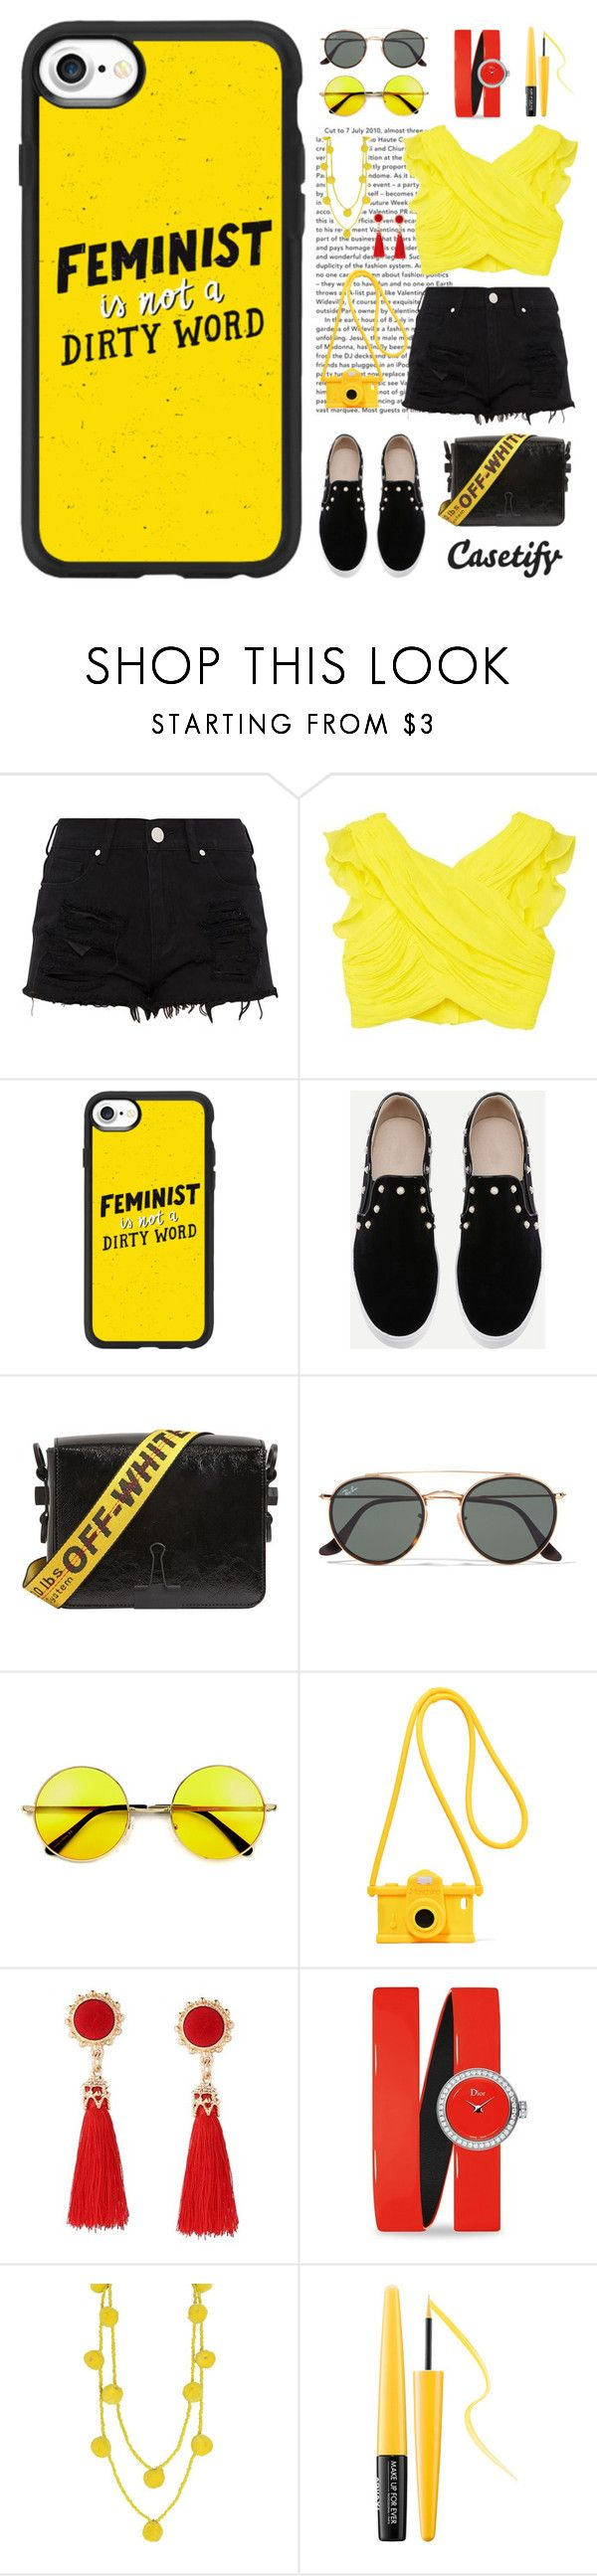 """Feminist🌹"" by casetify ❤ liked on Polyvore featuring MANGO, Casetify, Off-White, Ray-Ban, Moschino, Christian Dior, Humble Chic and MAKE UP FOR EVER"